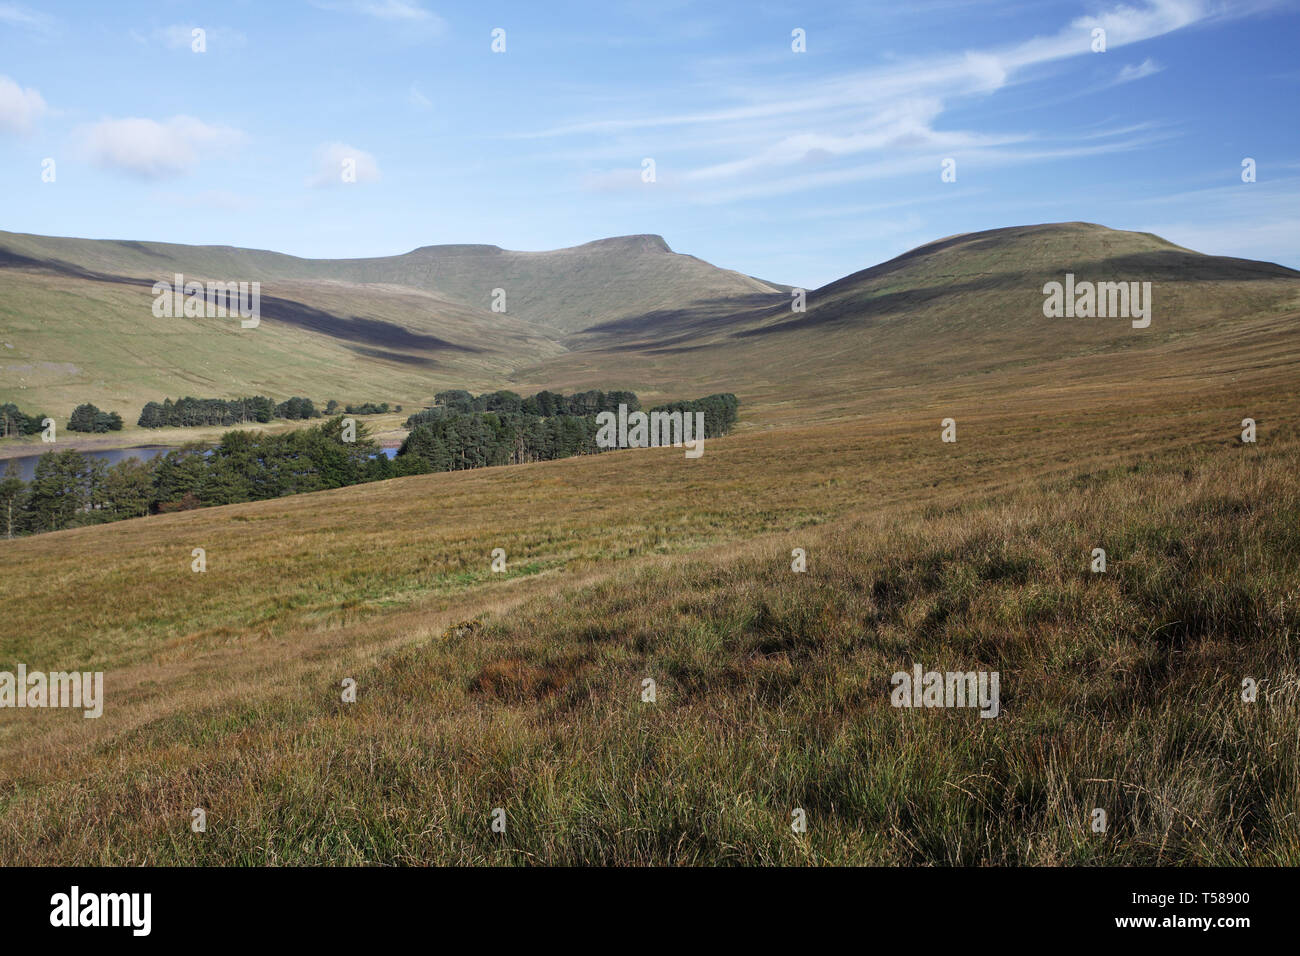 View to Pen-y-fan and Corn Dhu Brecon Beacons National Park Wales UK September 2012 - Stock Image